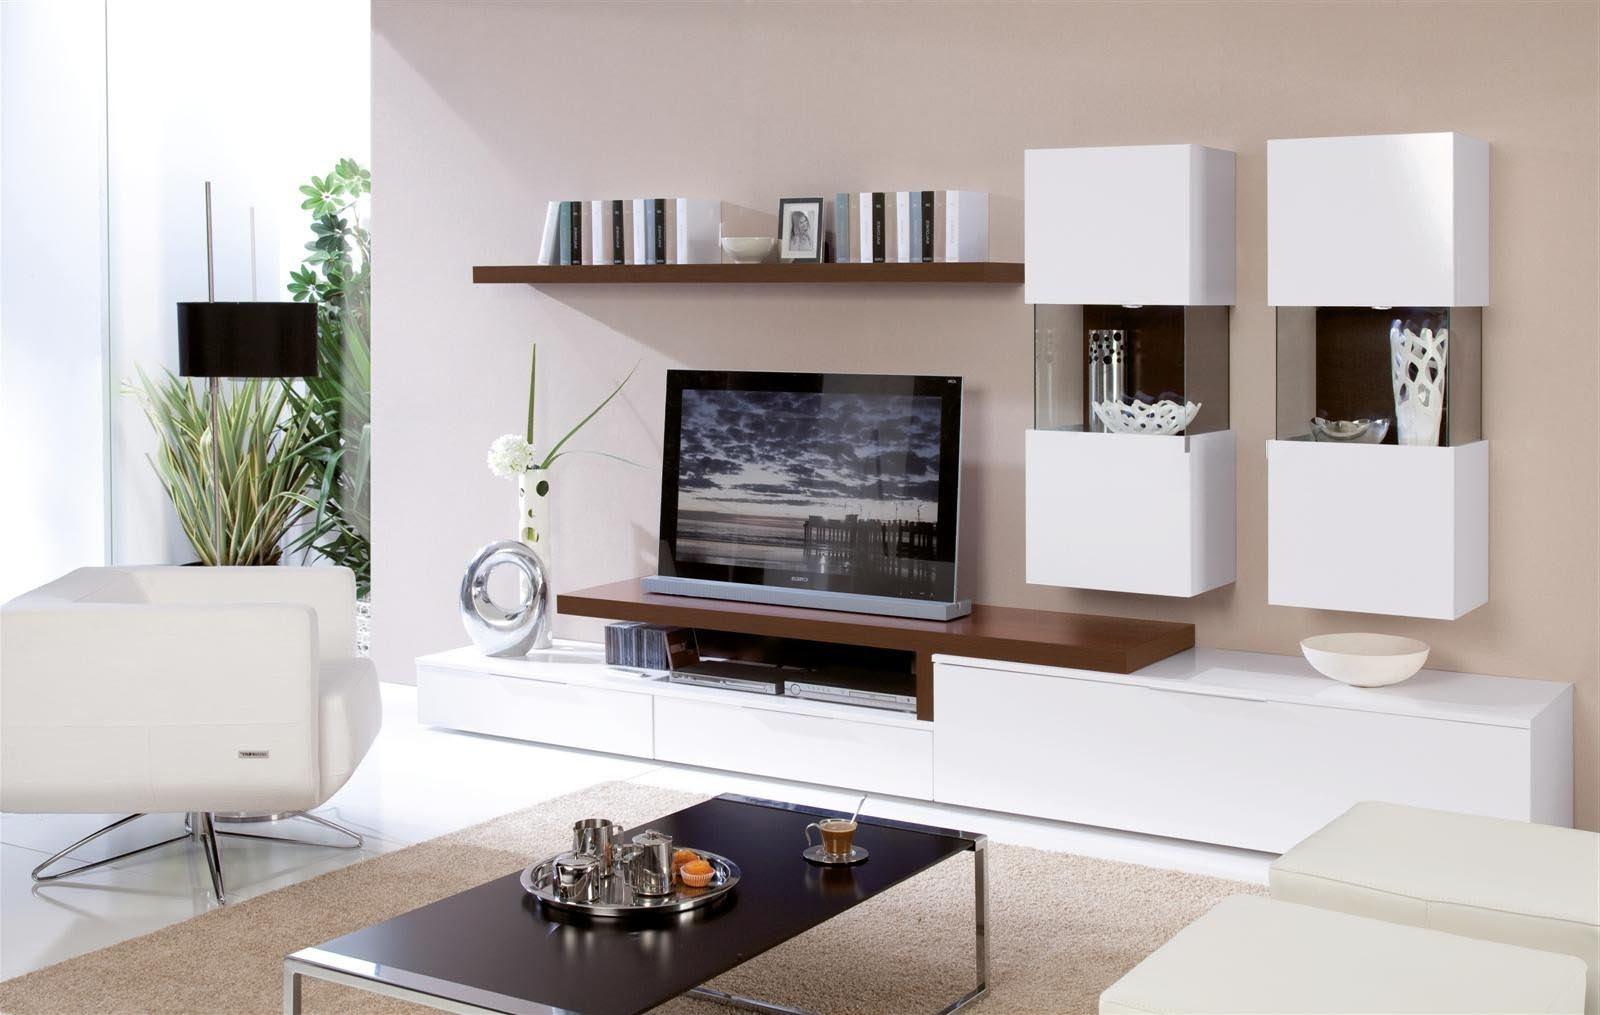 Decorating Wall Mounted And Floating Shelves In Your House